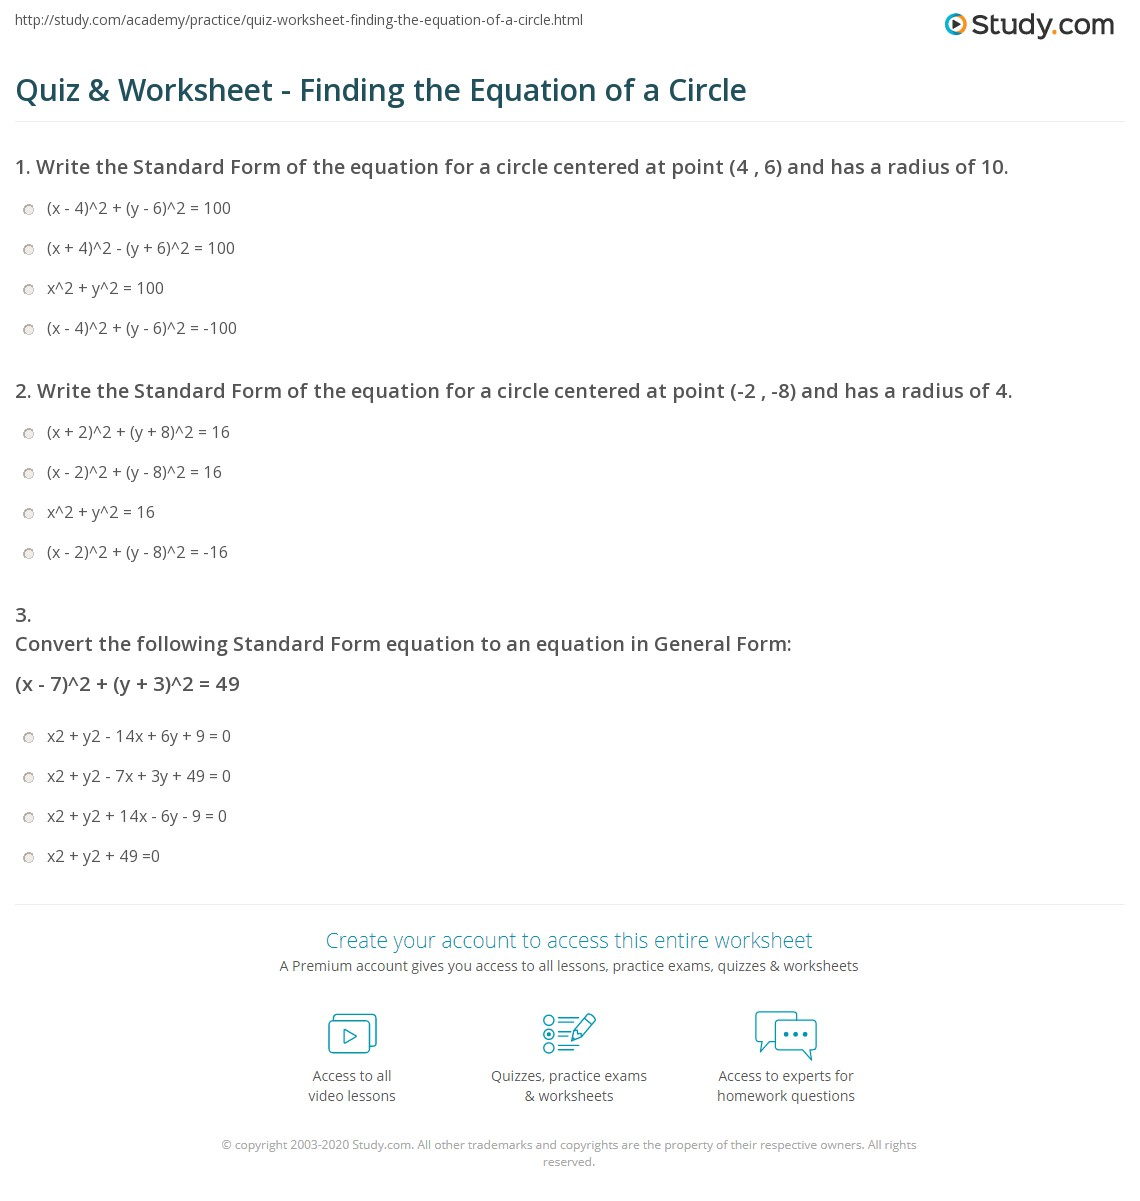 Writing Equations Of Circles Worksheet Answers